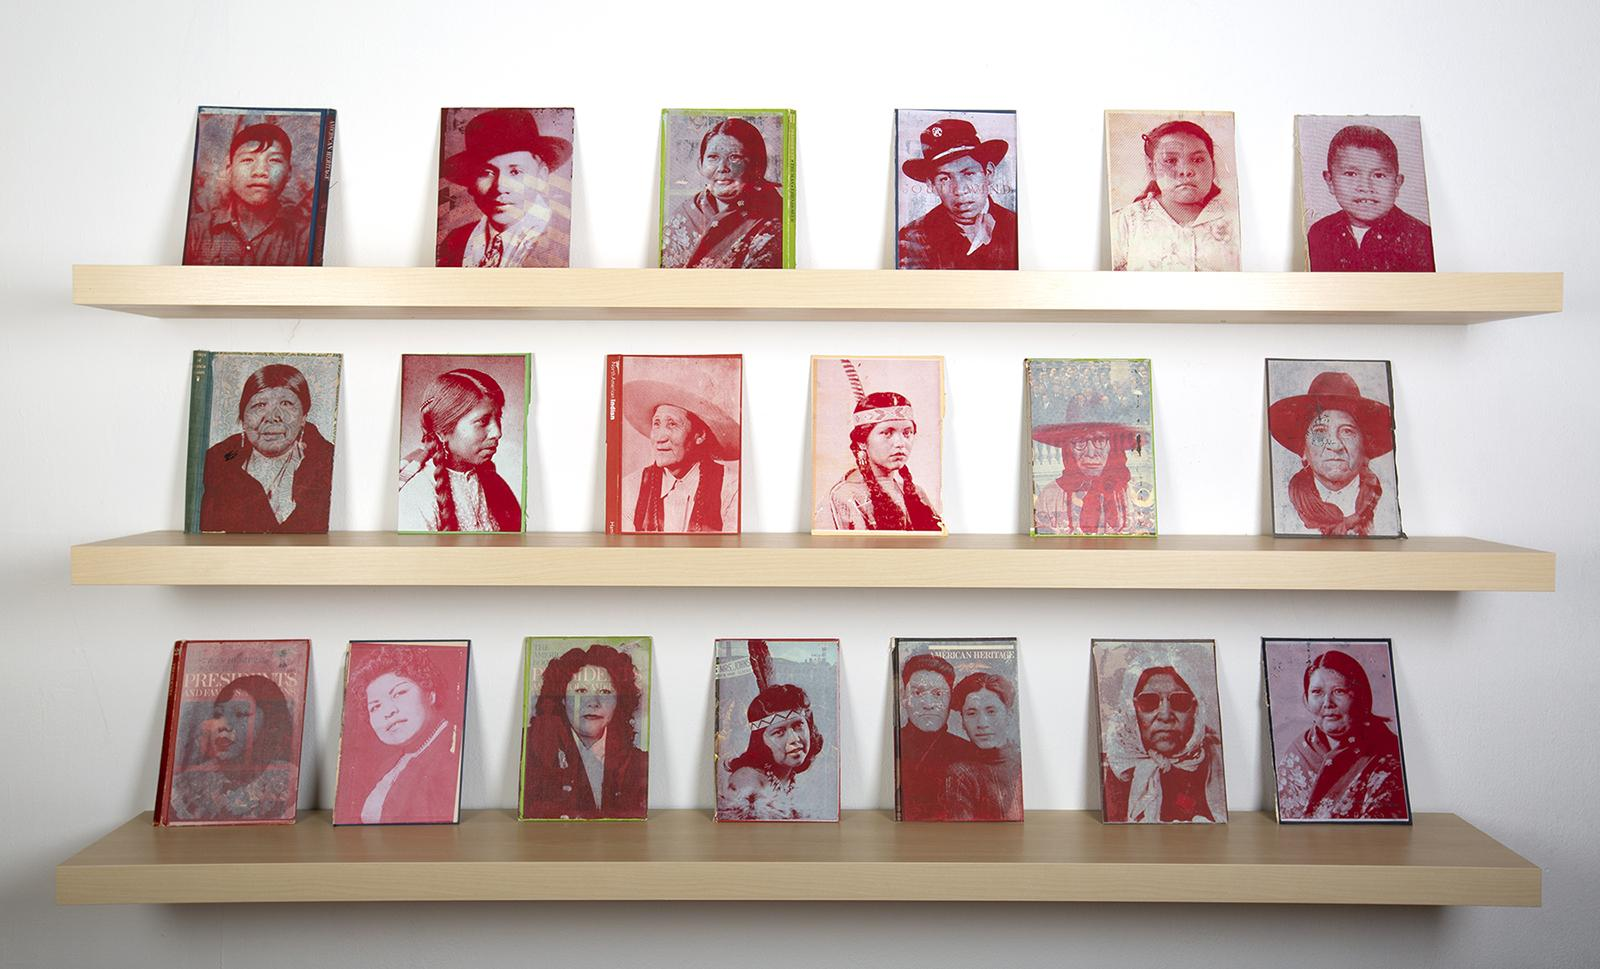 Three shelves with 19 works featuring portraits from an Indigenous family archive screen printed onto book pages